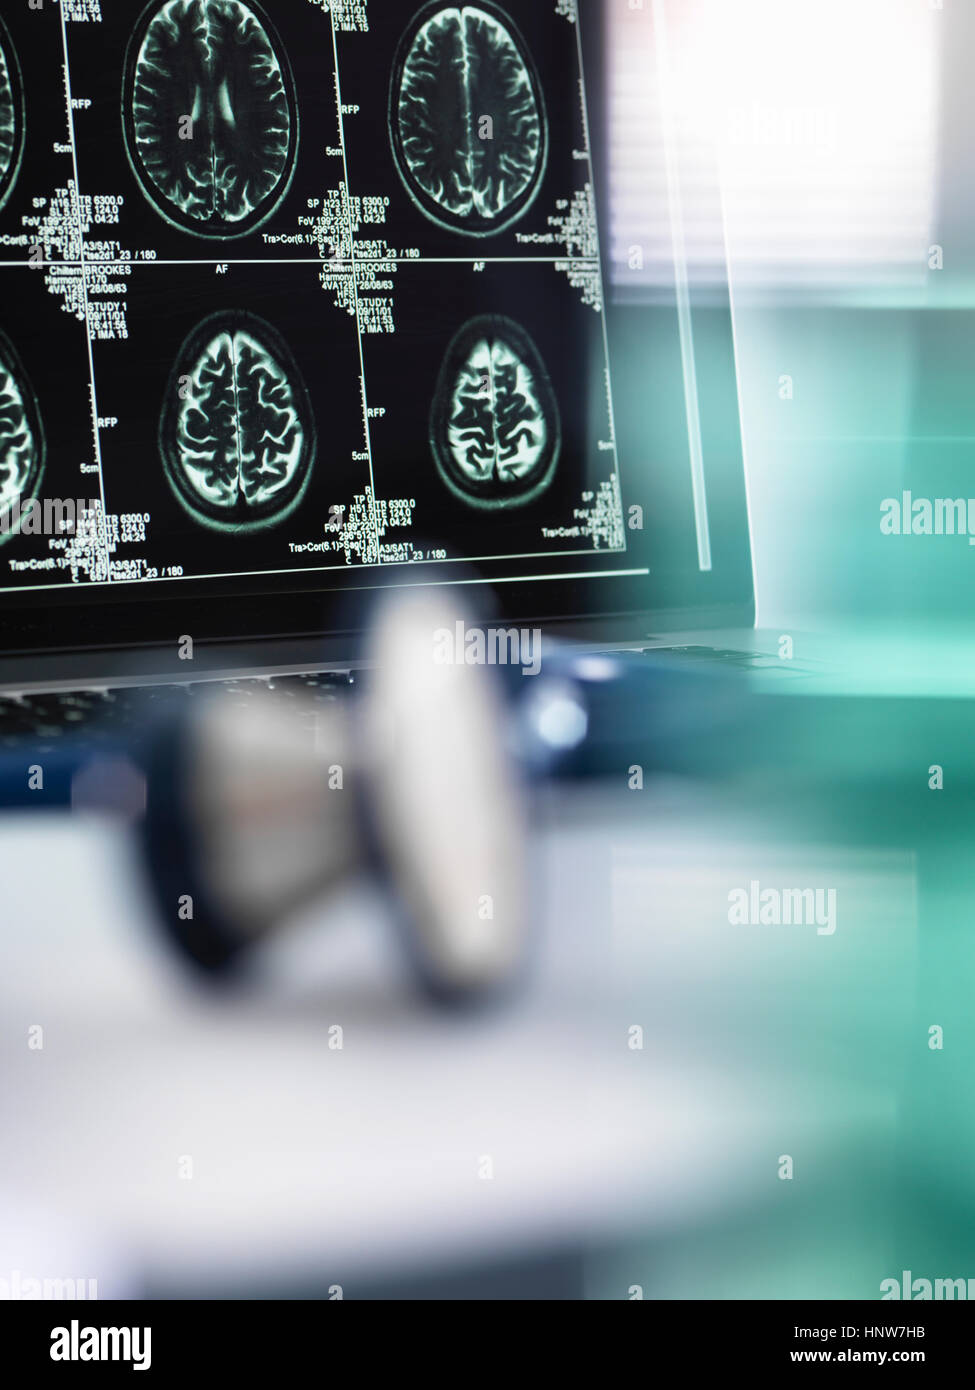 Series of MRI brain scans on computer screen with stethoscope in foreground on doctor's desk - Stock Image